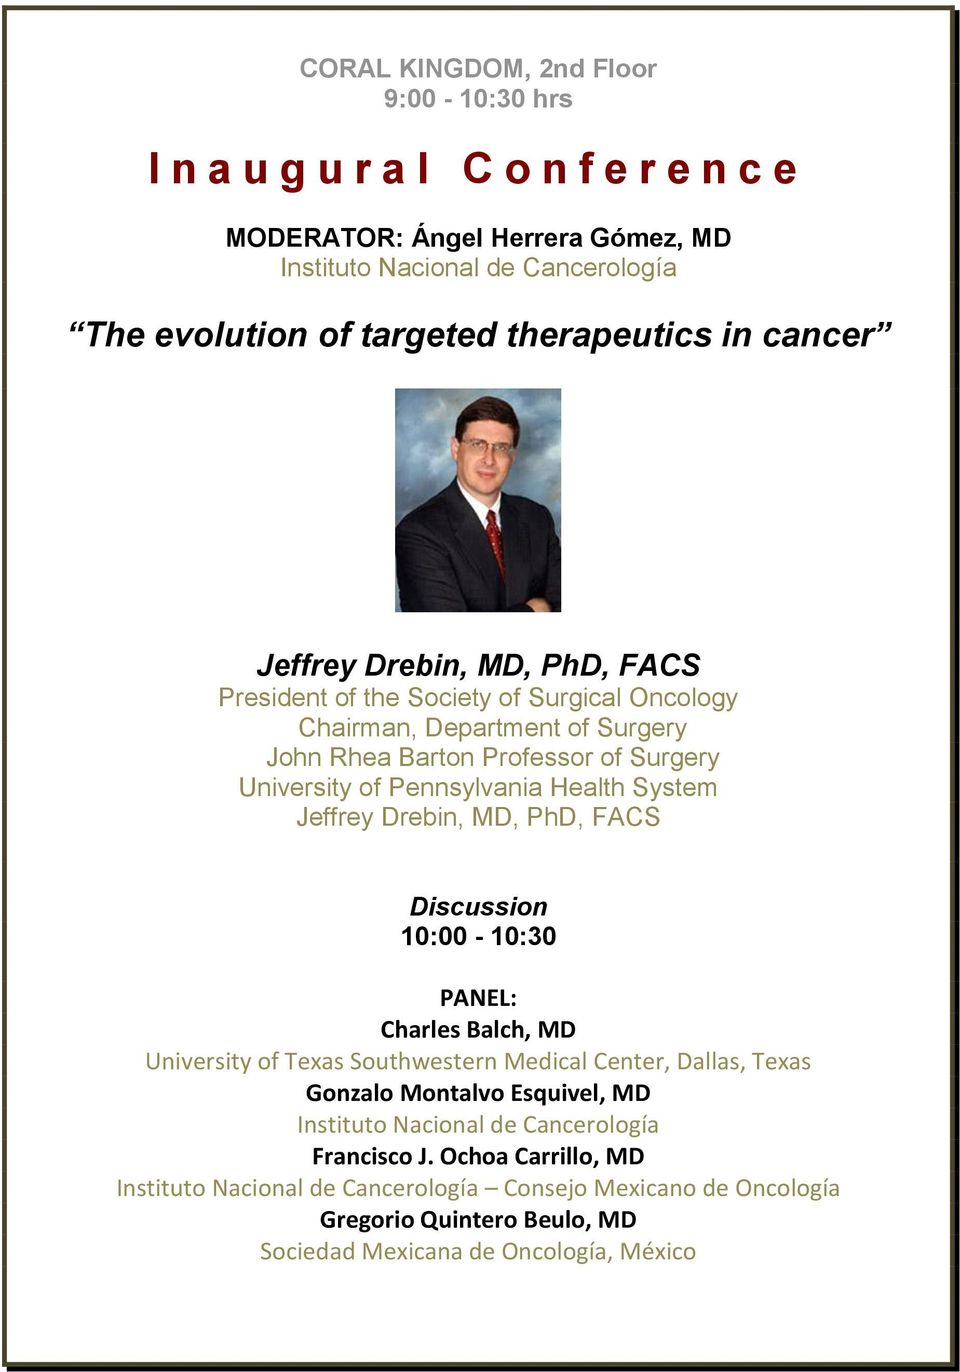 Pennsylvania Health System Jeffrey Drebin, MD, PhD, FACS Discussion 10:00-10:30 PANEL: Charles Balch, MD University of Texas Southwestern Medical Center, Dallas,